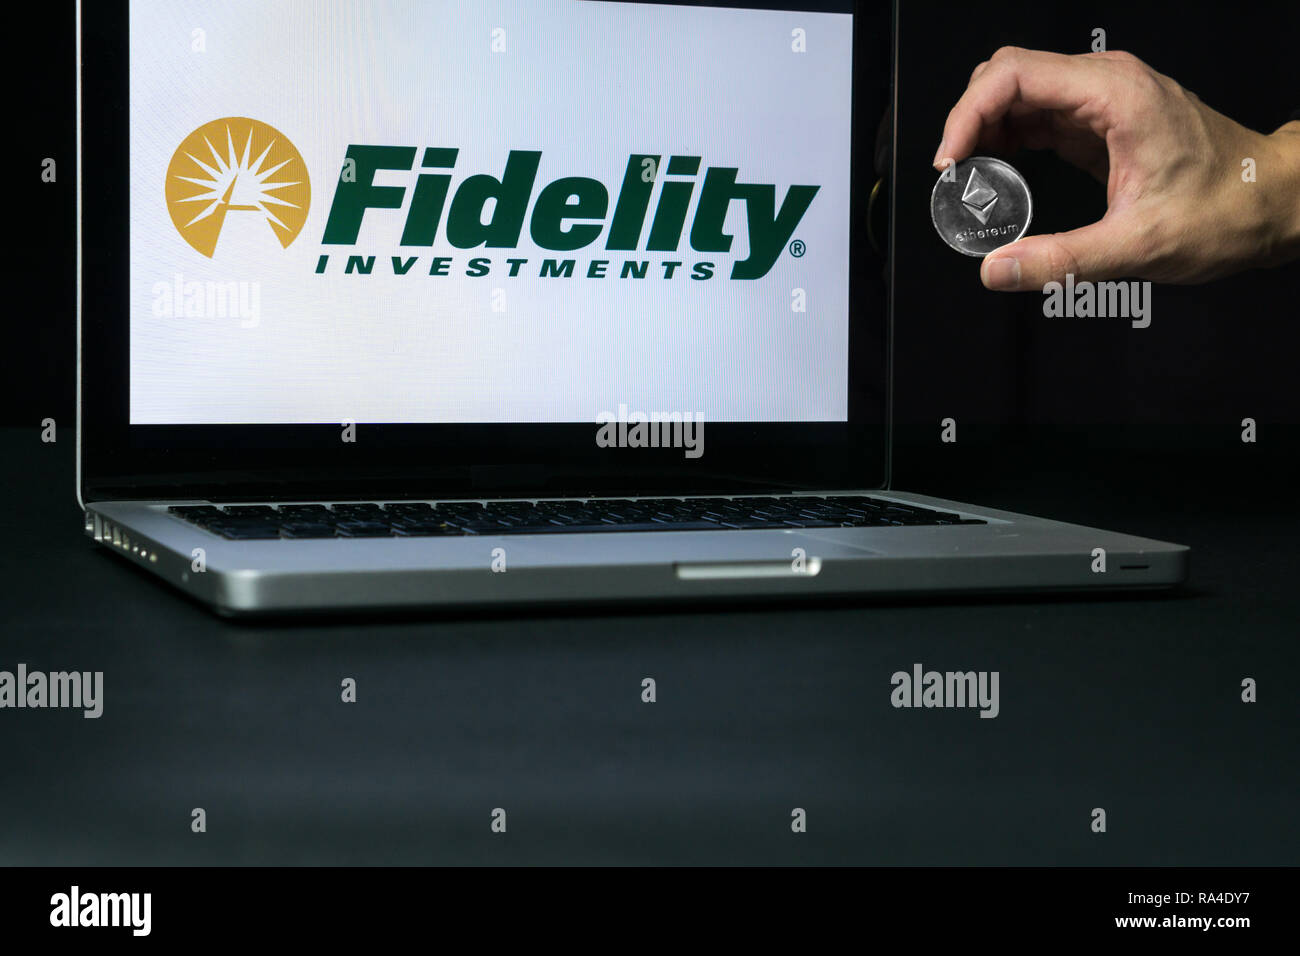 Ethereum coin with the Fidelity logo on a laptop screen, Slovenia - December 23th, 2018 - Stock Image